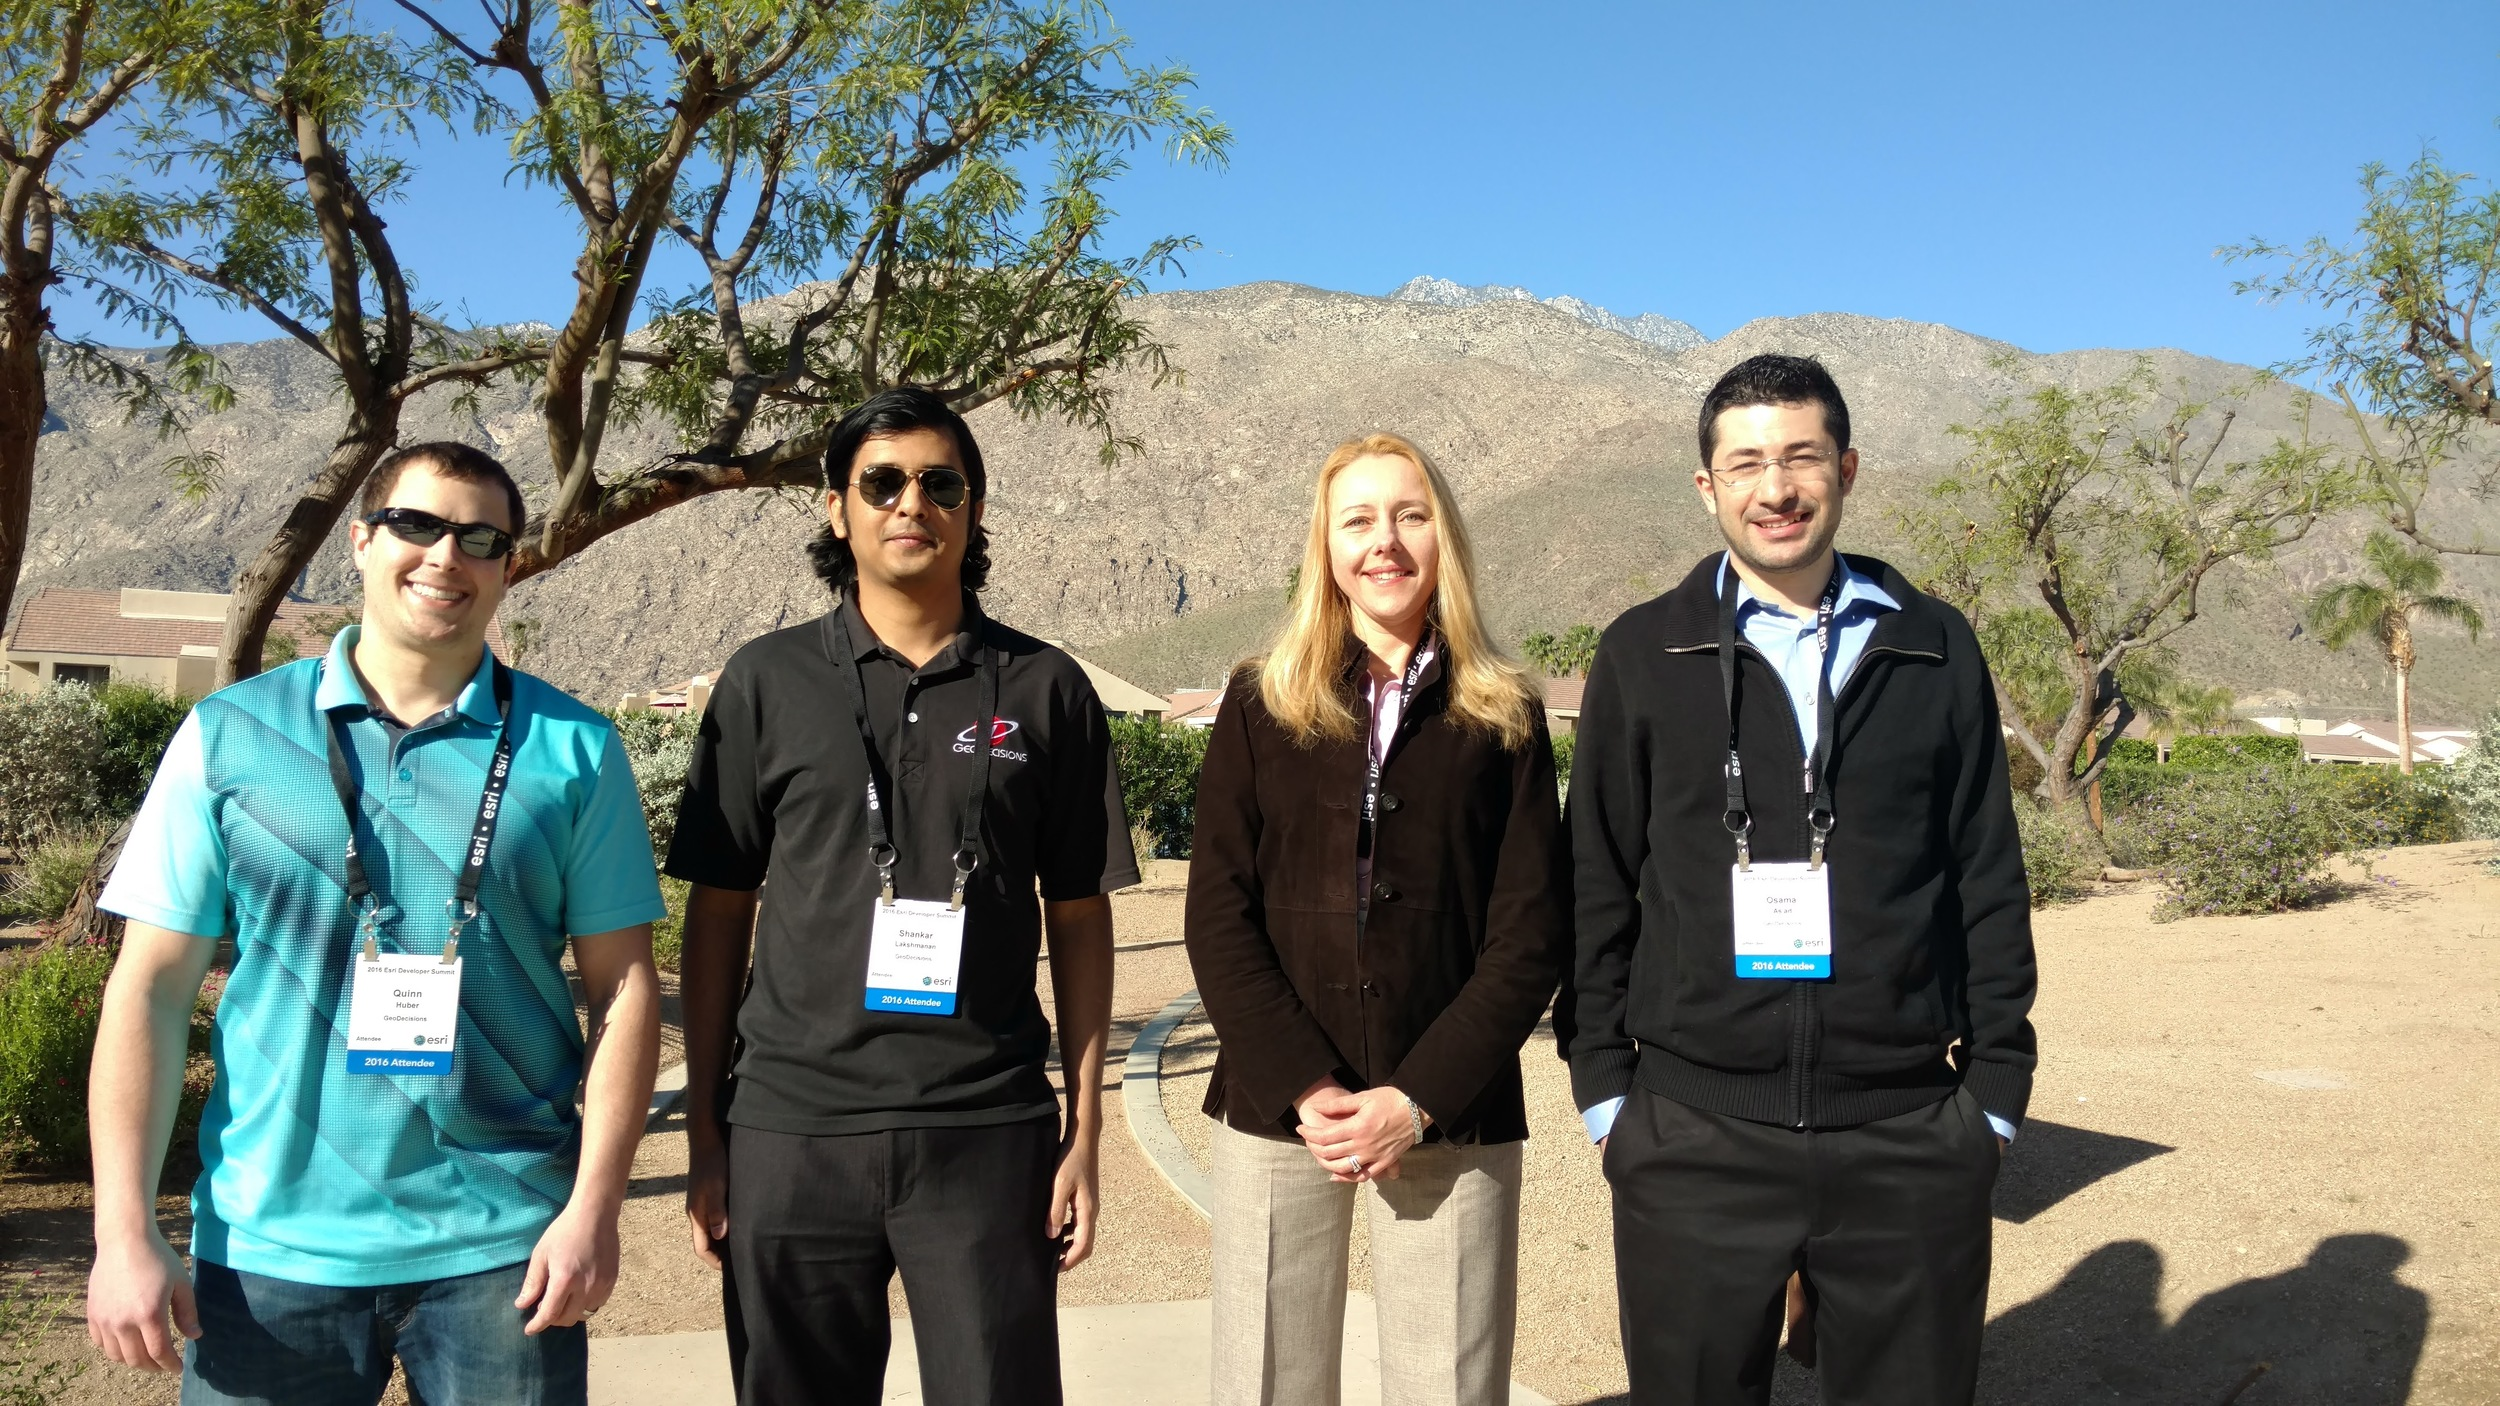 GeoDecisions team from left to right:Quinn Huber, Shankar Lakshmanan, Nаtаlliа Rоbinsоn, and Osama As'ad